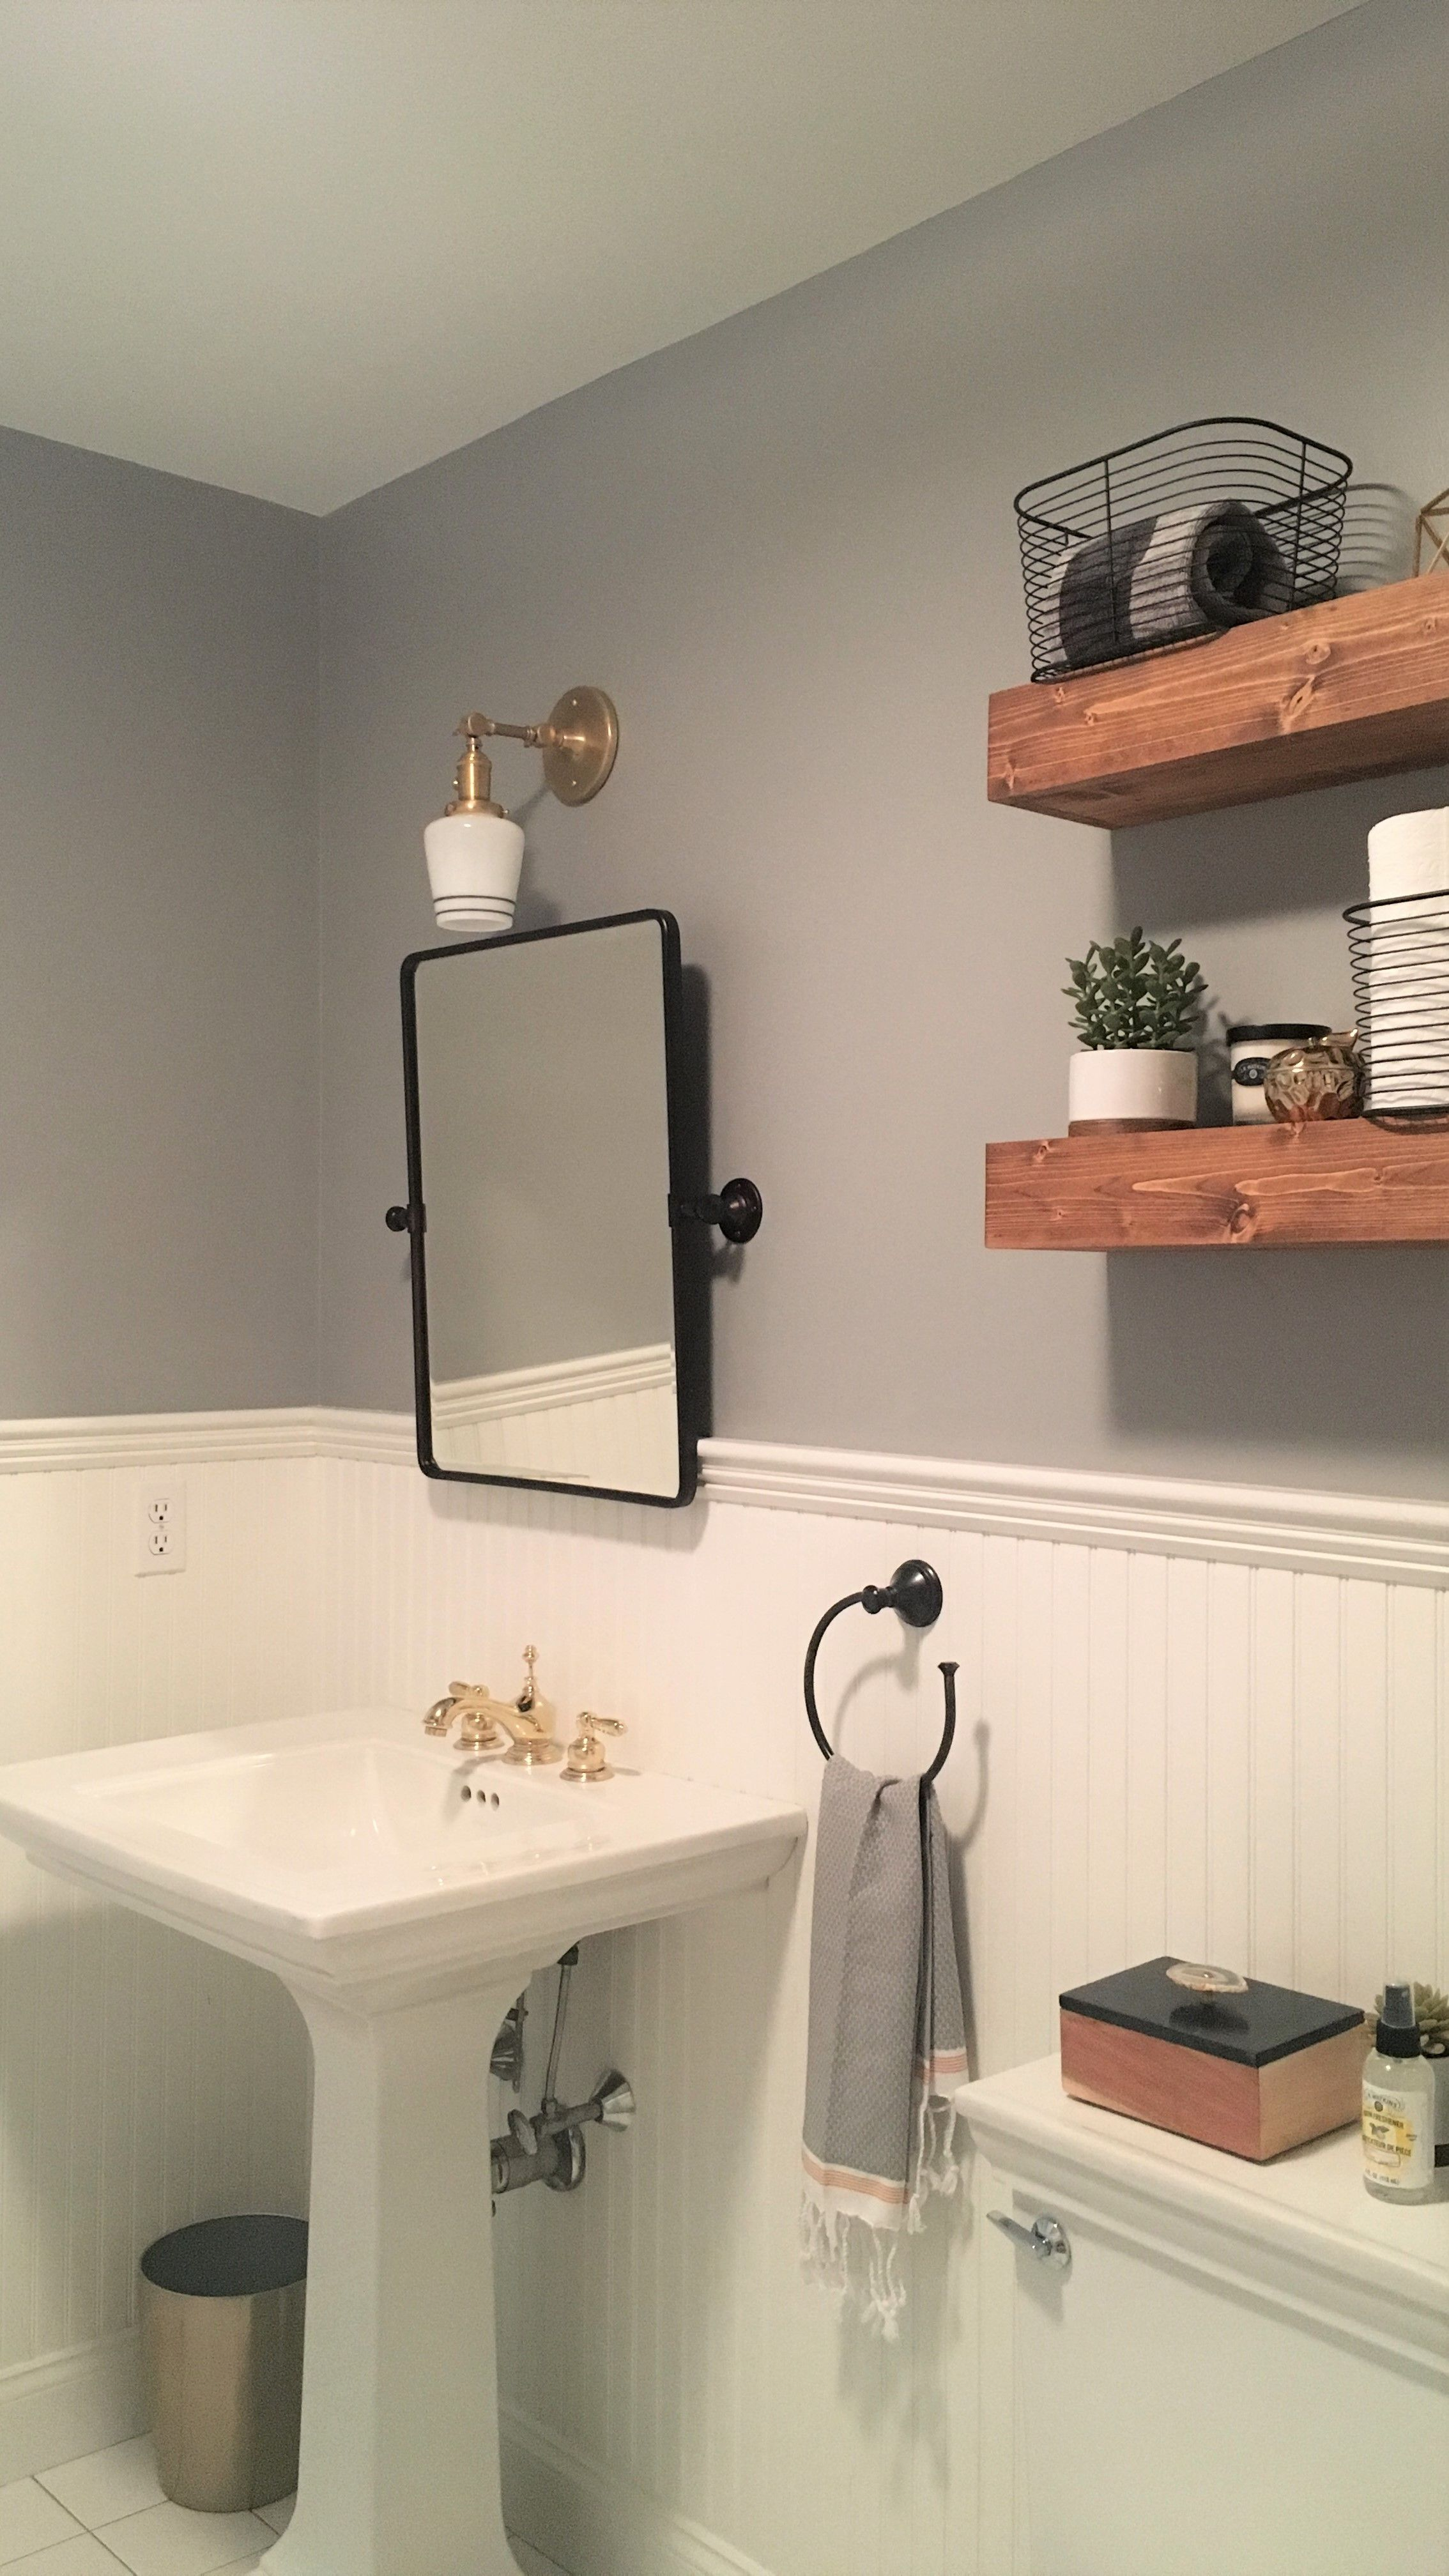 modern farmhouse bathroom floating shelves vintage accents pedestal shelf sink garage storage racks television component heavy duty shelving unit opti myst fire velcro stickers